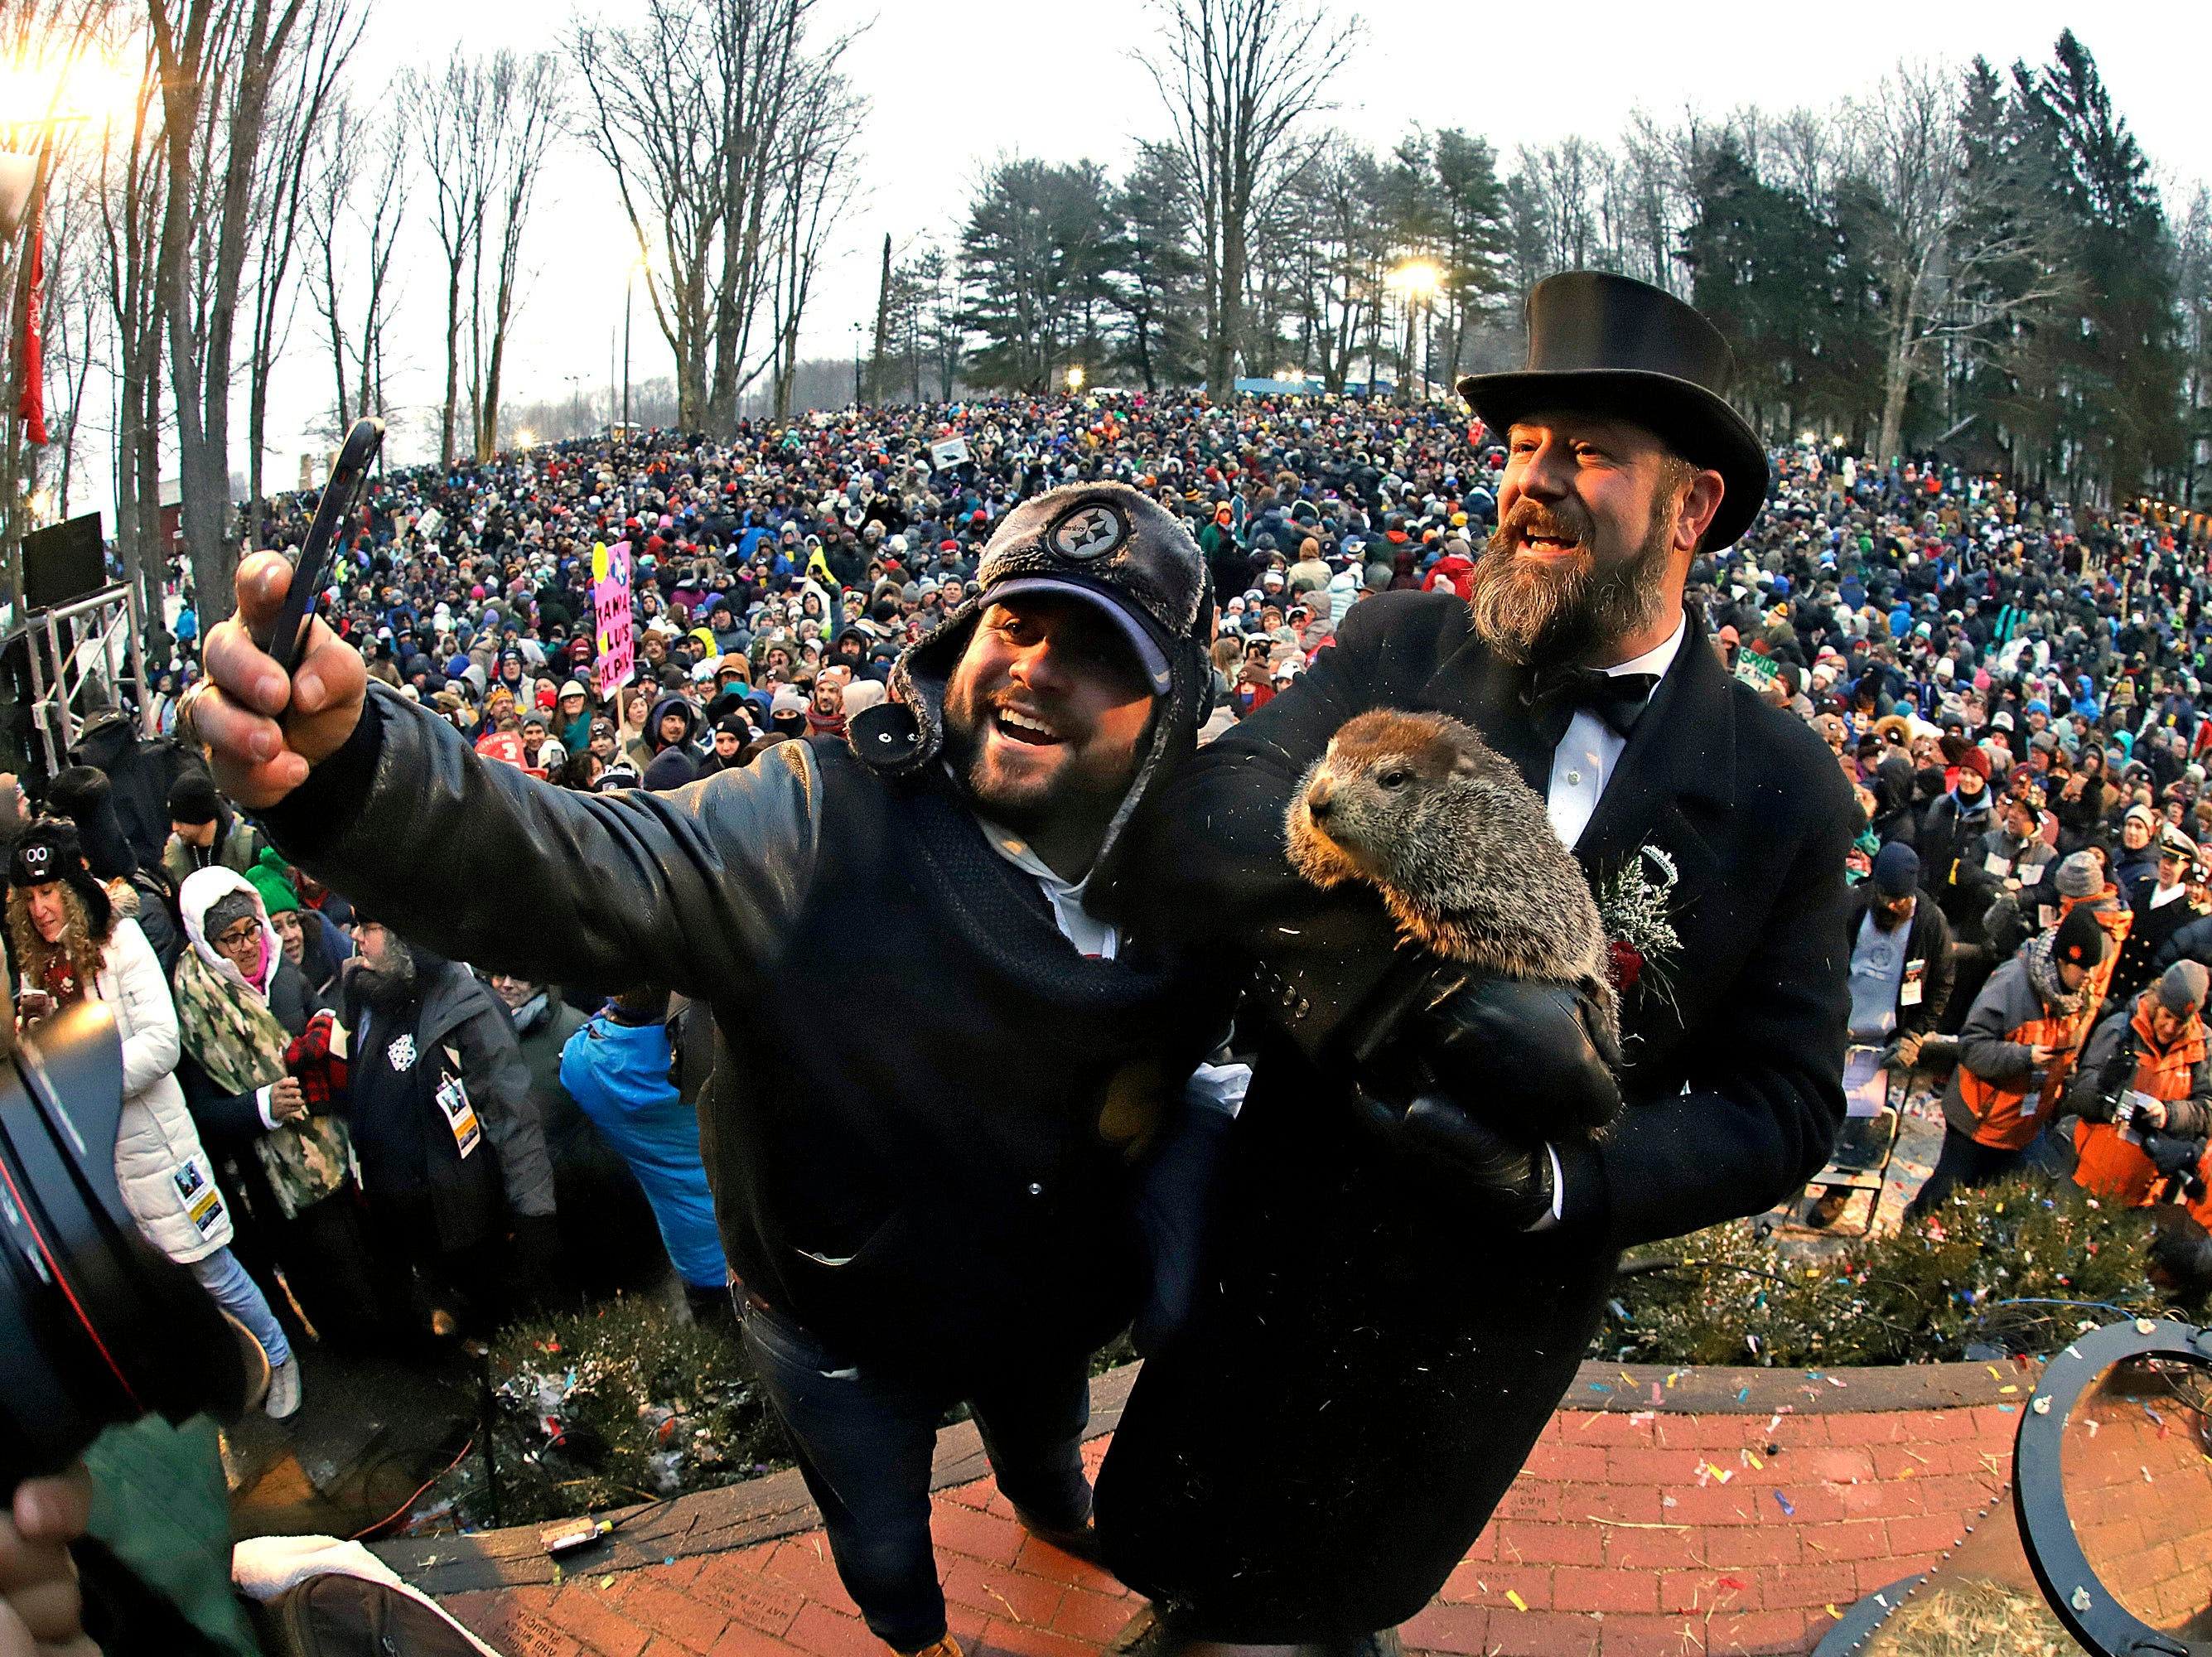 Groundhog Club co-handler Al Dereume, right, holds Punxsutawney Phil, the weather prognosticating groundhog, and poses for a selfie with a groundhog fan, in front of the crowd gathered for the 133rd celebration of Groundhog Day on Gobbler's Knob in Punxsutawney, Pa. Saturday, Feb. 2, 2019. Phil's handlers said that the groundhog has forecast an early spring. (AP Photo/Gene J. Puskar)